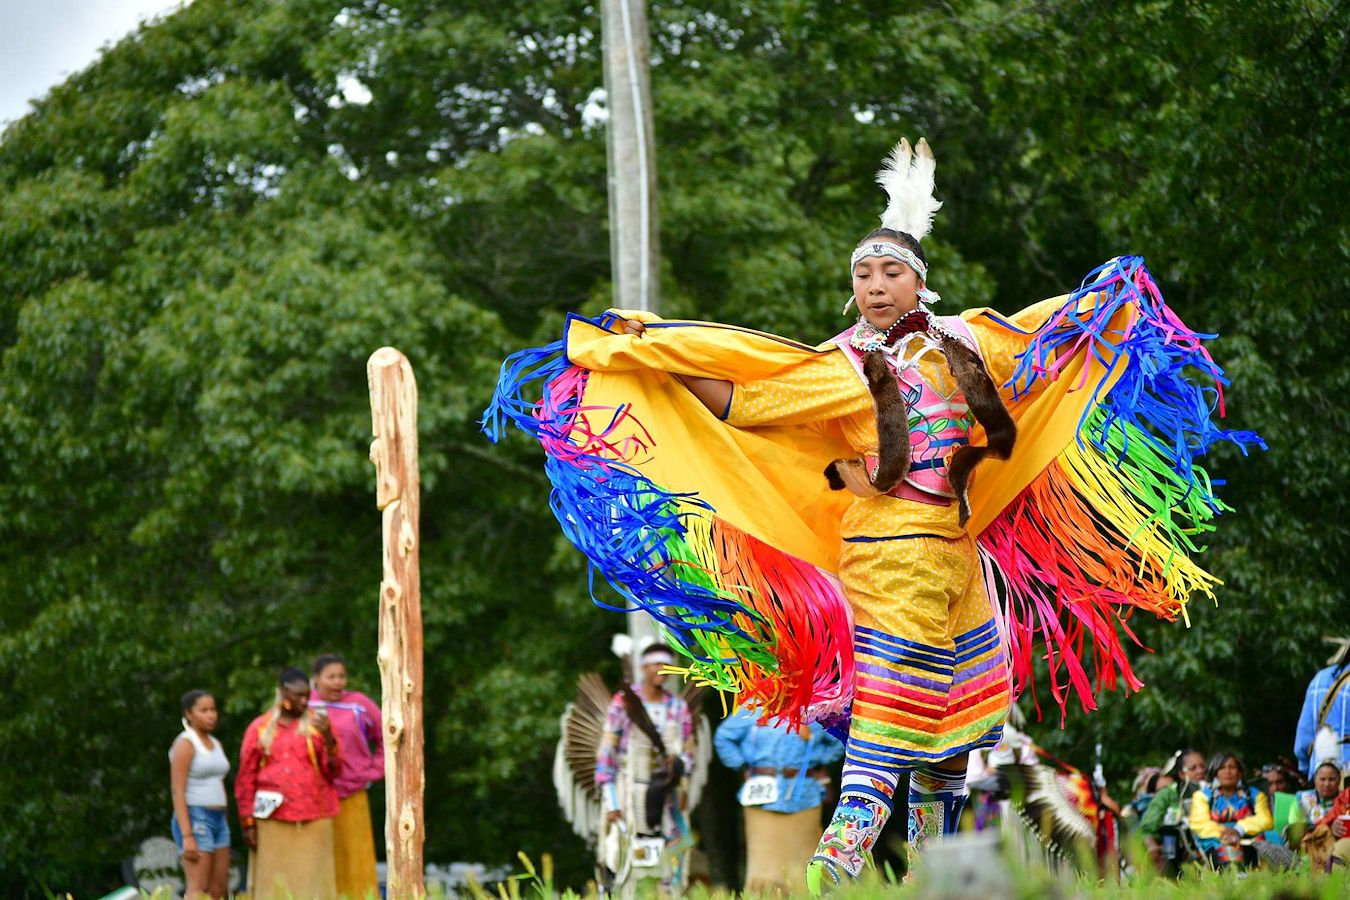 2019 Shinnecock Indian Powwow | New York Labor Day Pow Wow